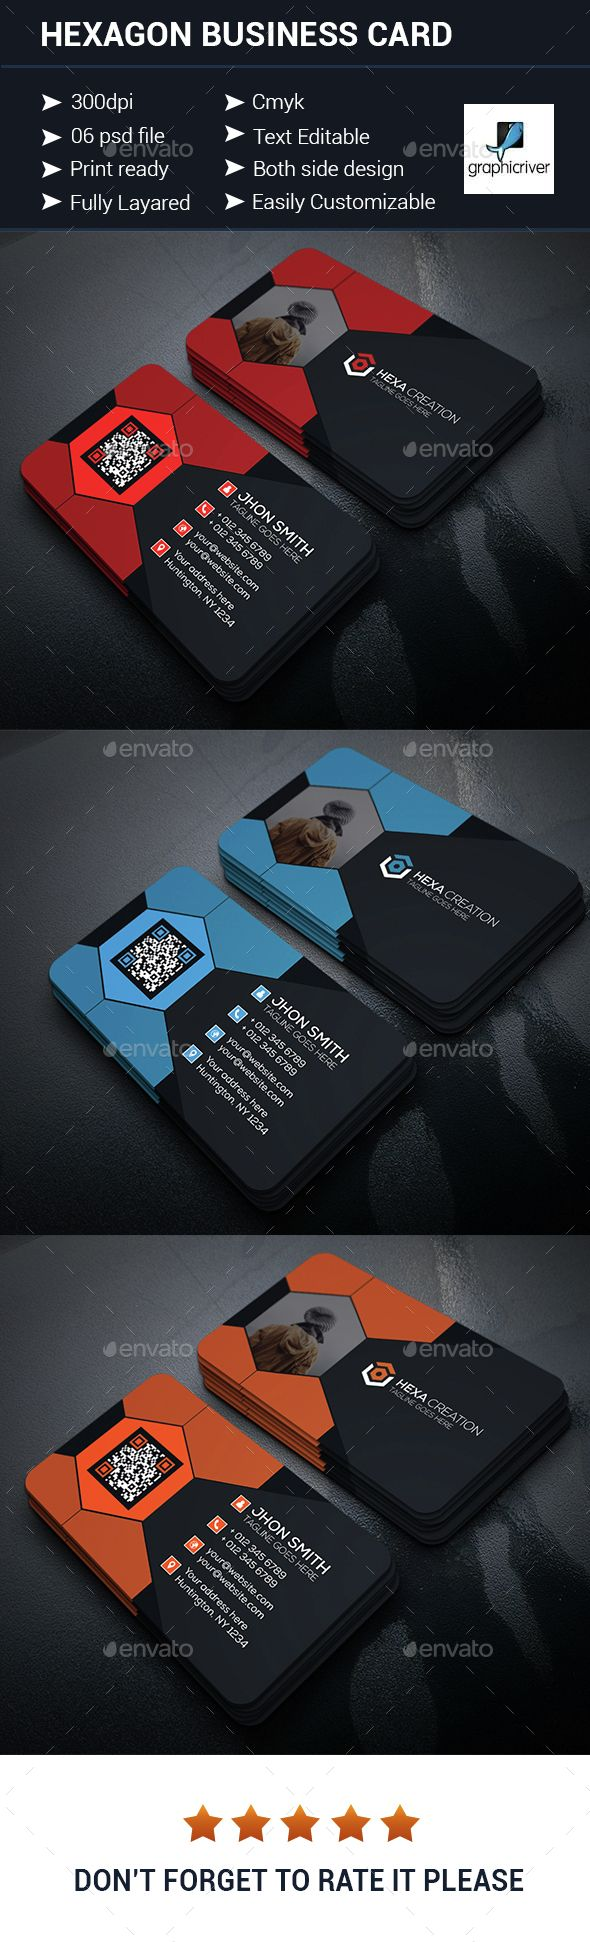 24 best ming pian images on pinterest hexagon shaped business card magicingreecefo Choice Image